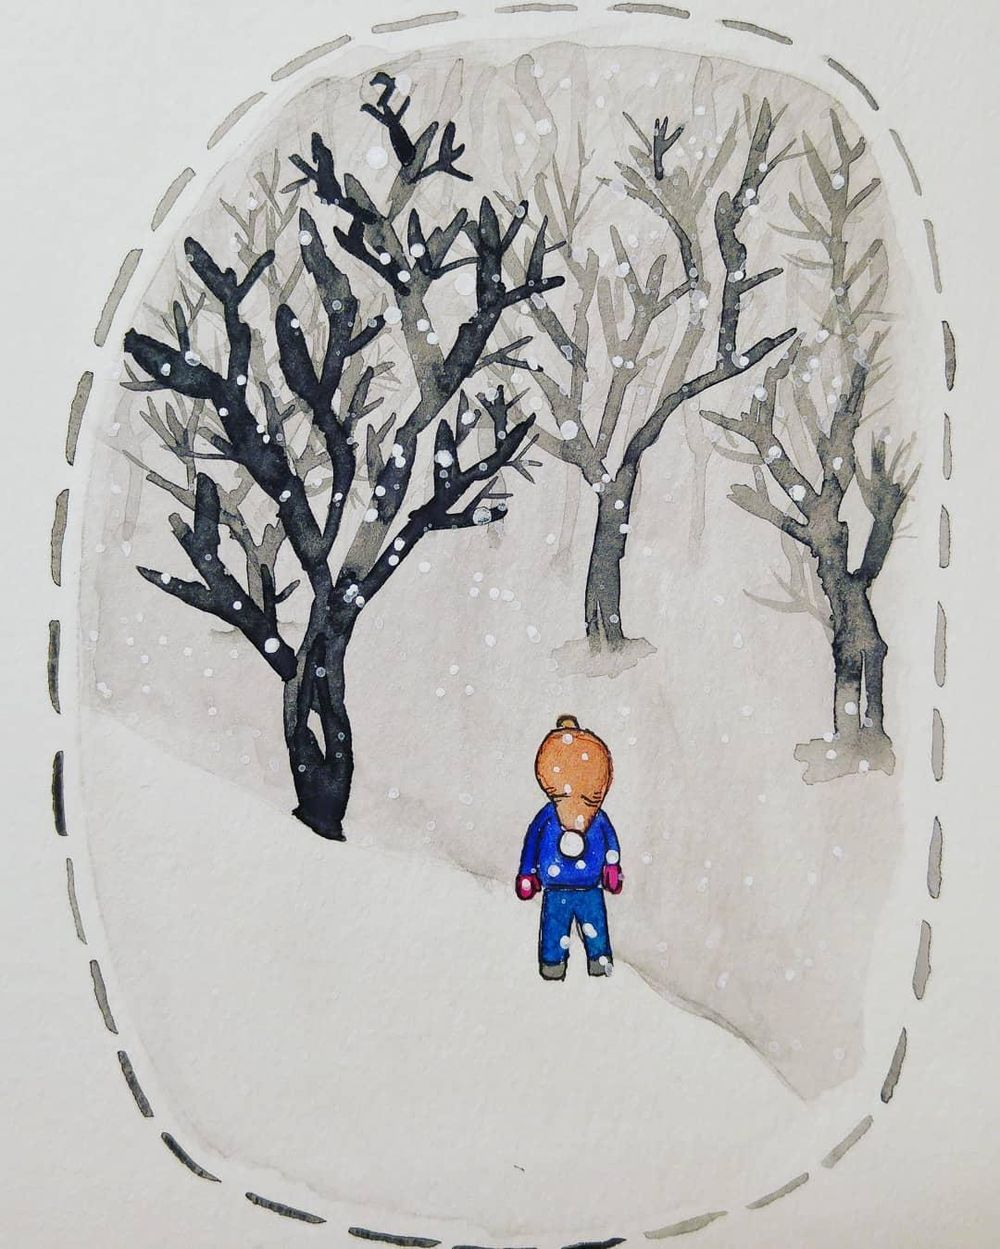 Watching the snow fall - image 1 - student project